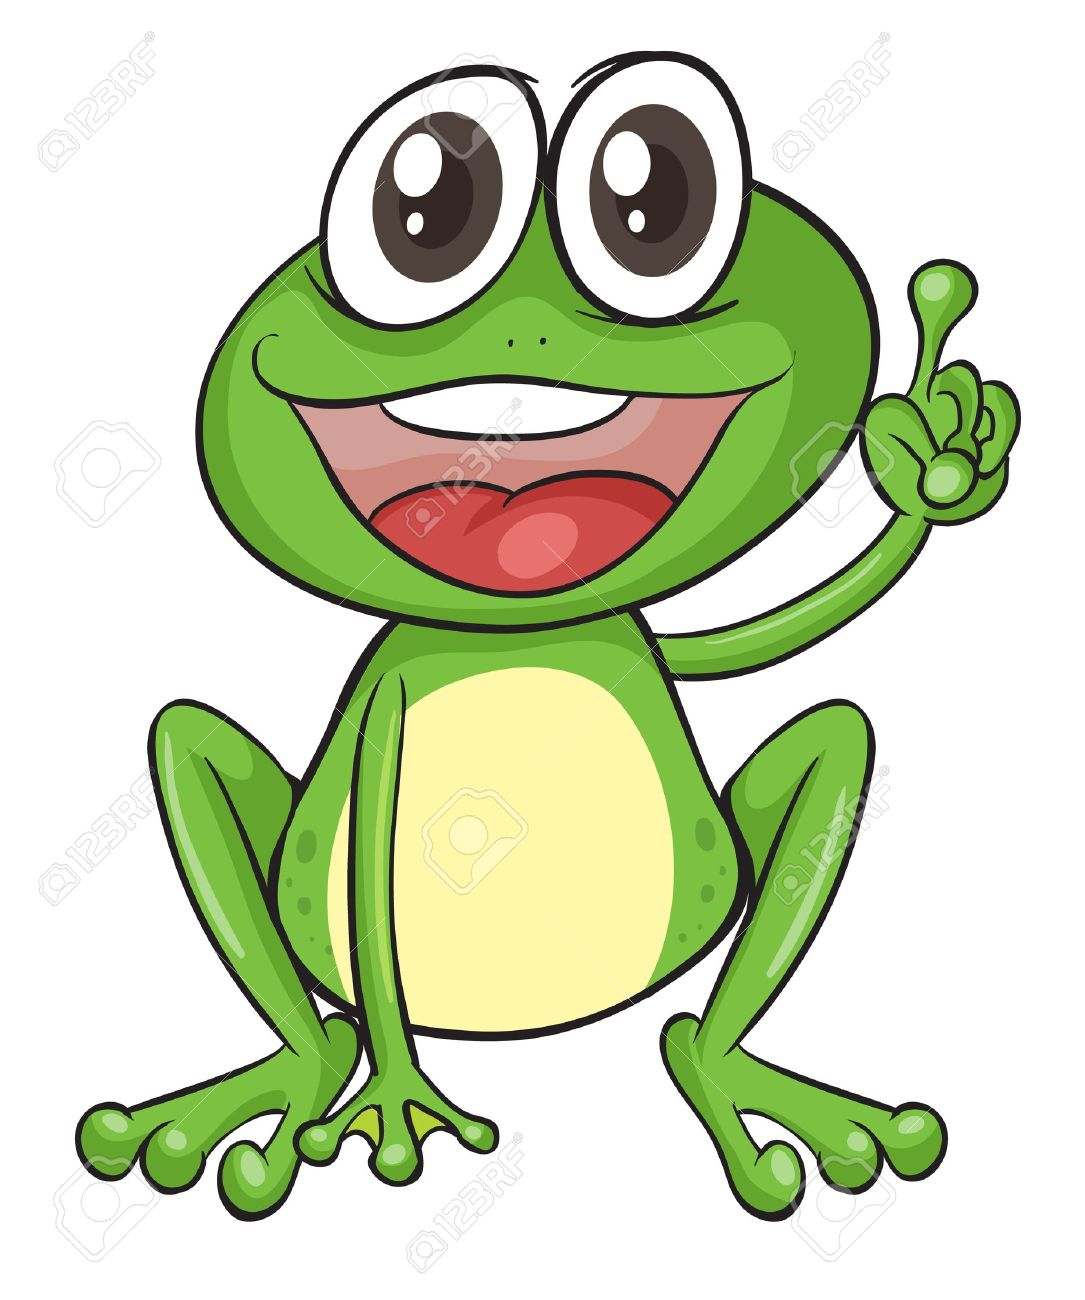 Clown Frog clipart #18, Download drawings